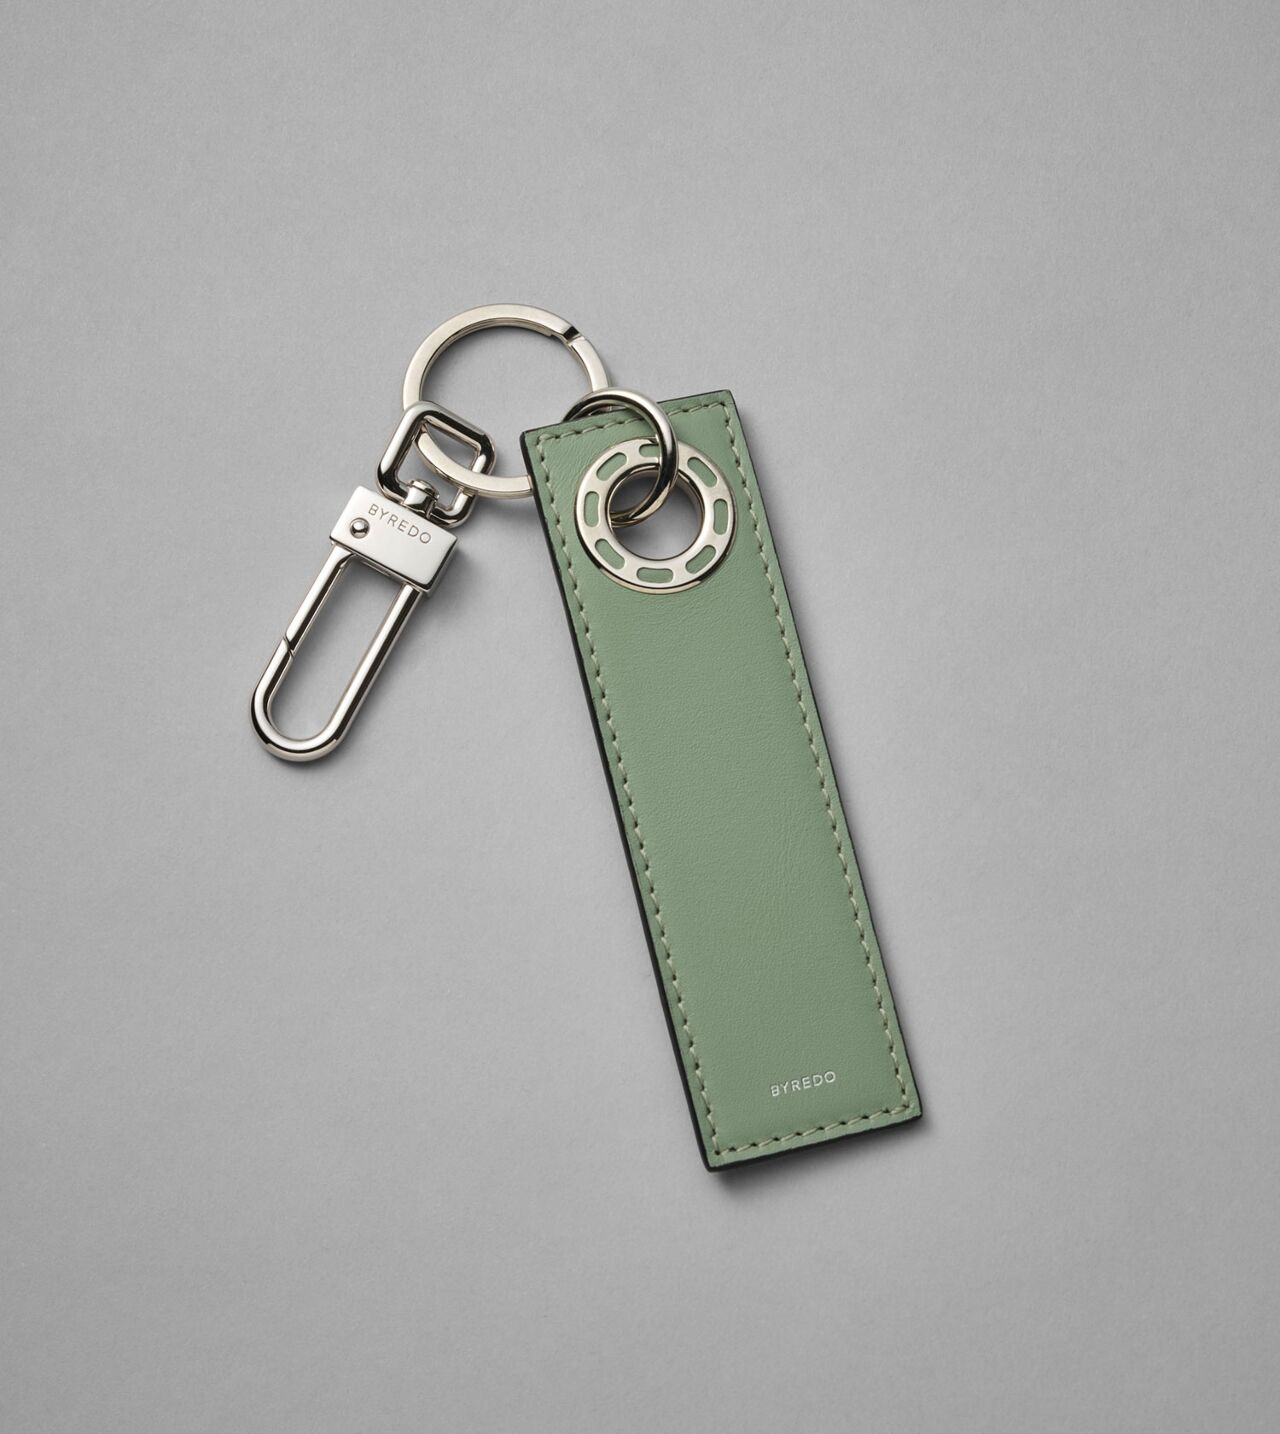 Picture of Byredo Keychain in Light green